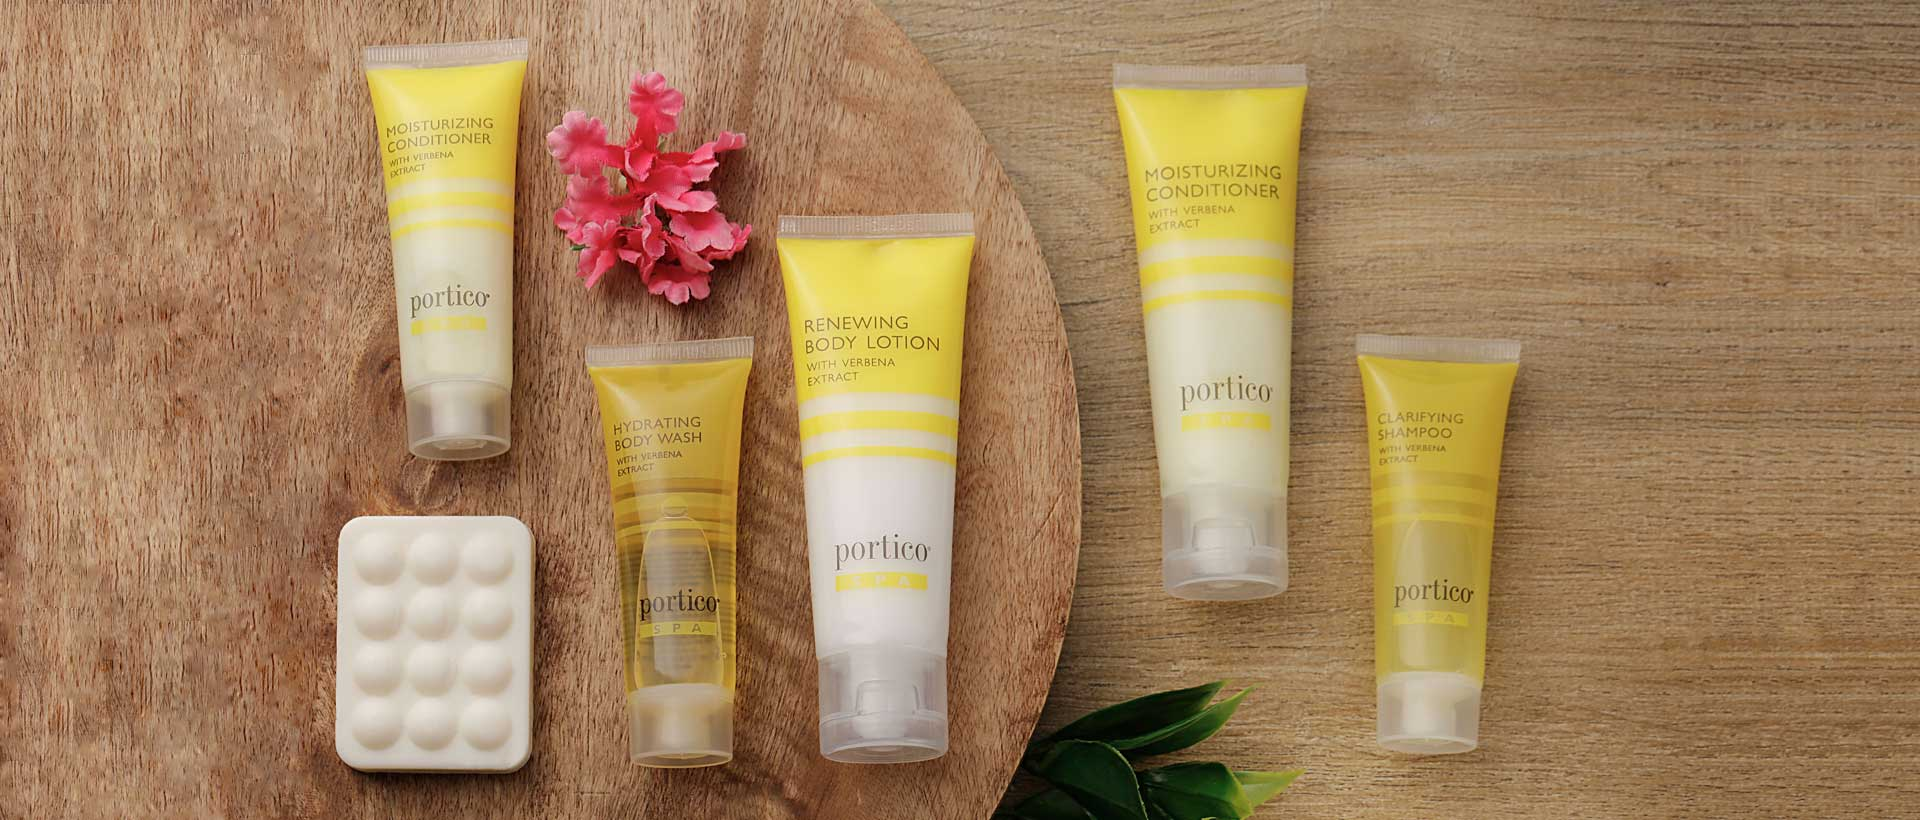 Licensed Hotel Toiletries India, Portico®, Kimirica Hunter International